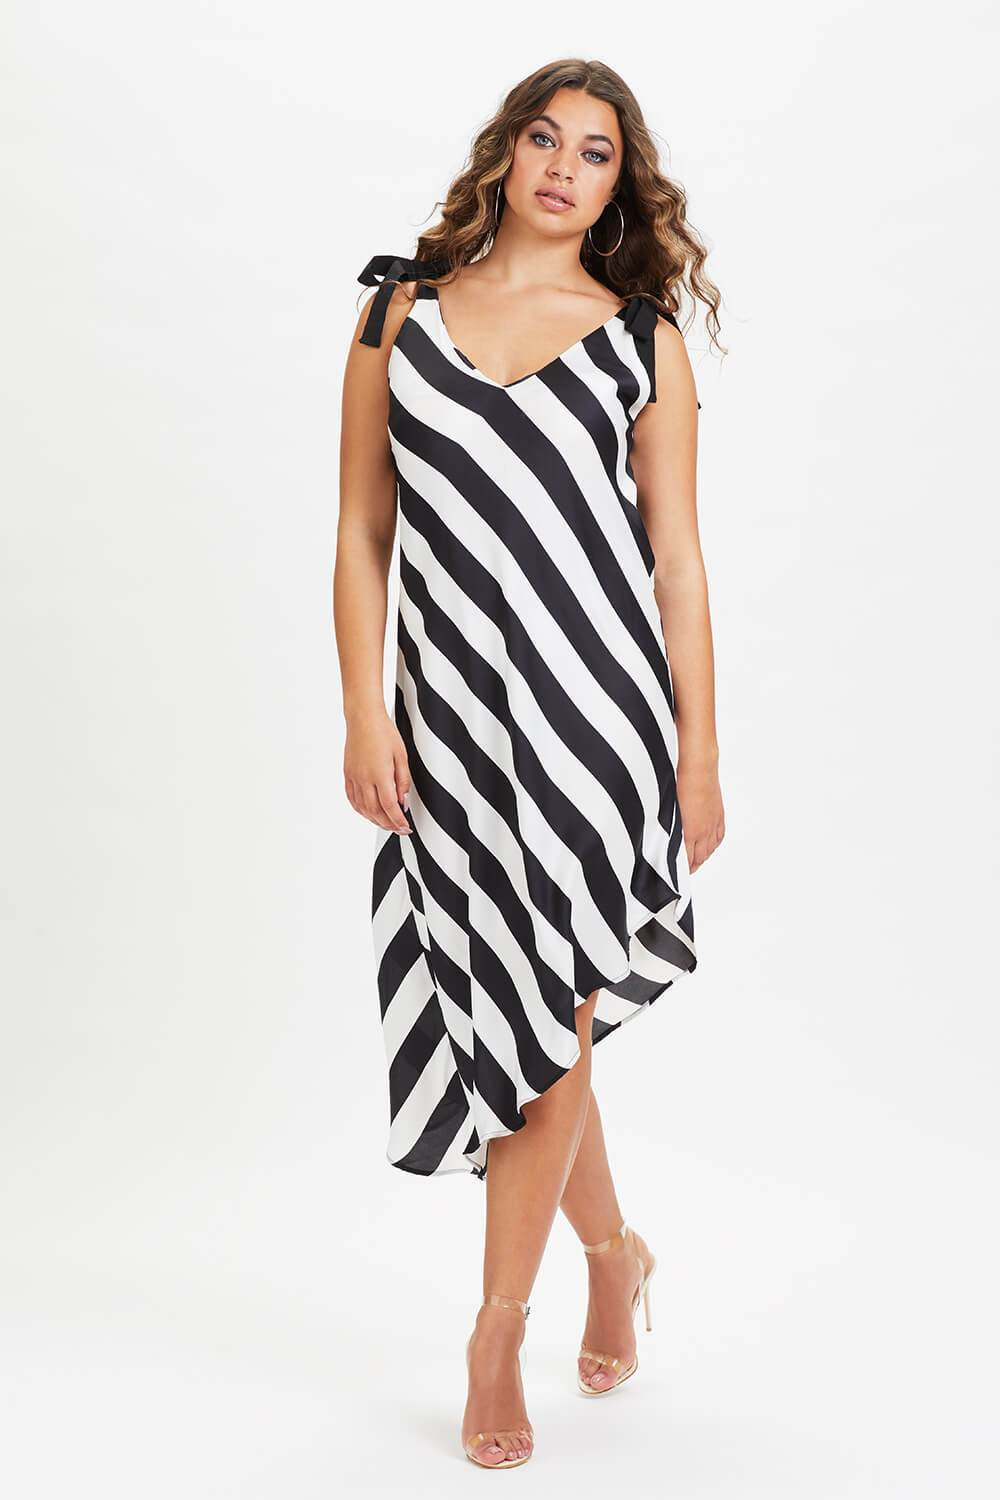 U.MAY2019 Billie Midi Monochrome Dress